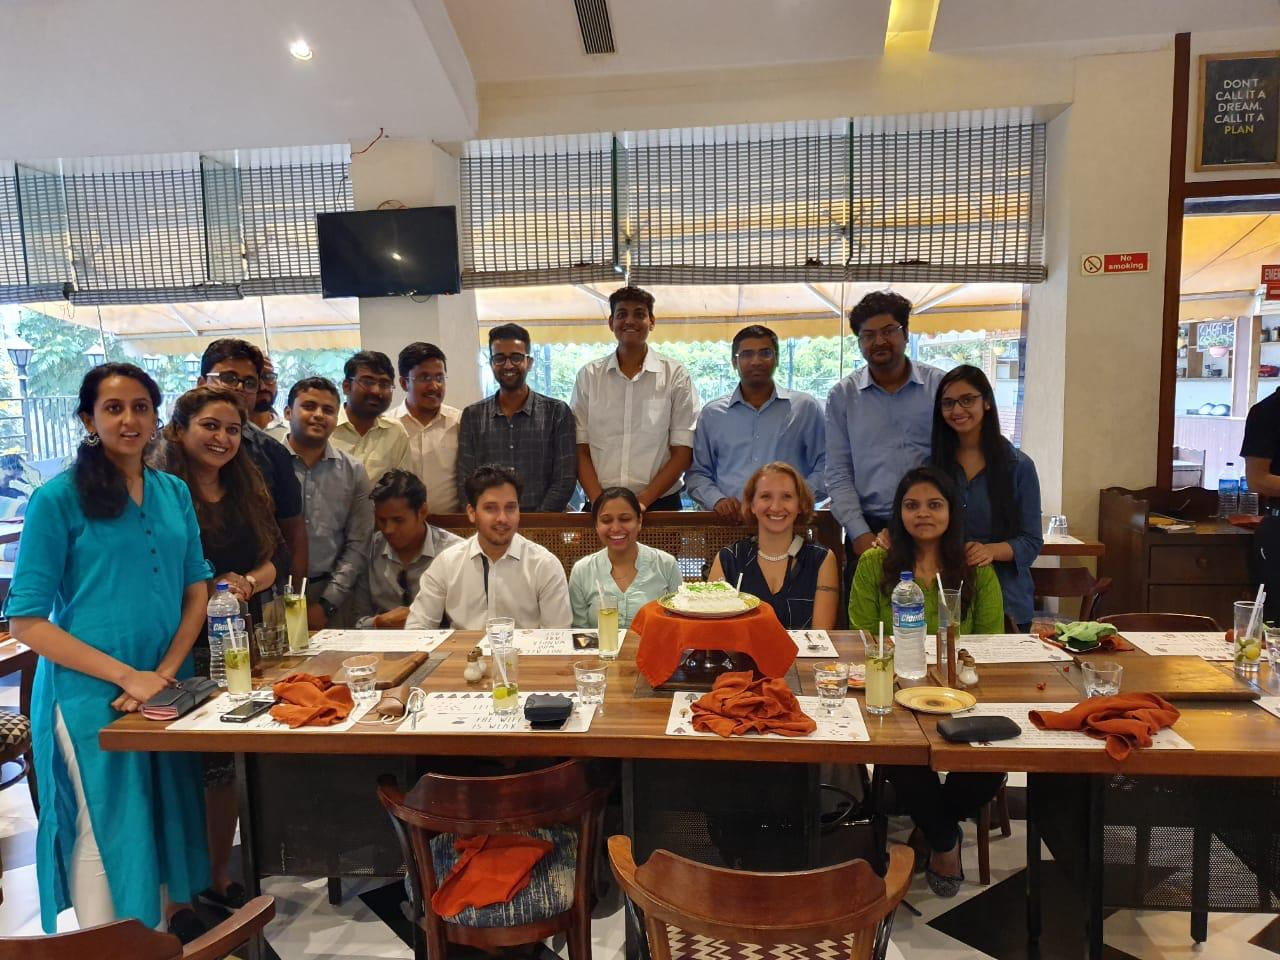 Having dinner together as a team: The intensive teamwork has not only pushed the online metals platform forward, but also deepened the relationship between the various teams.